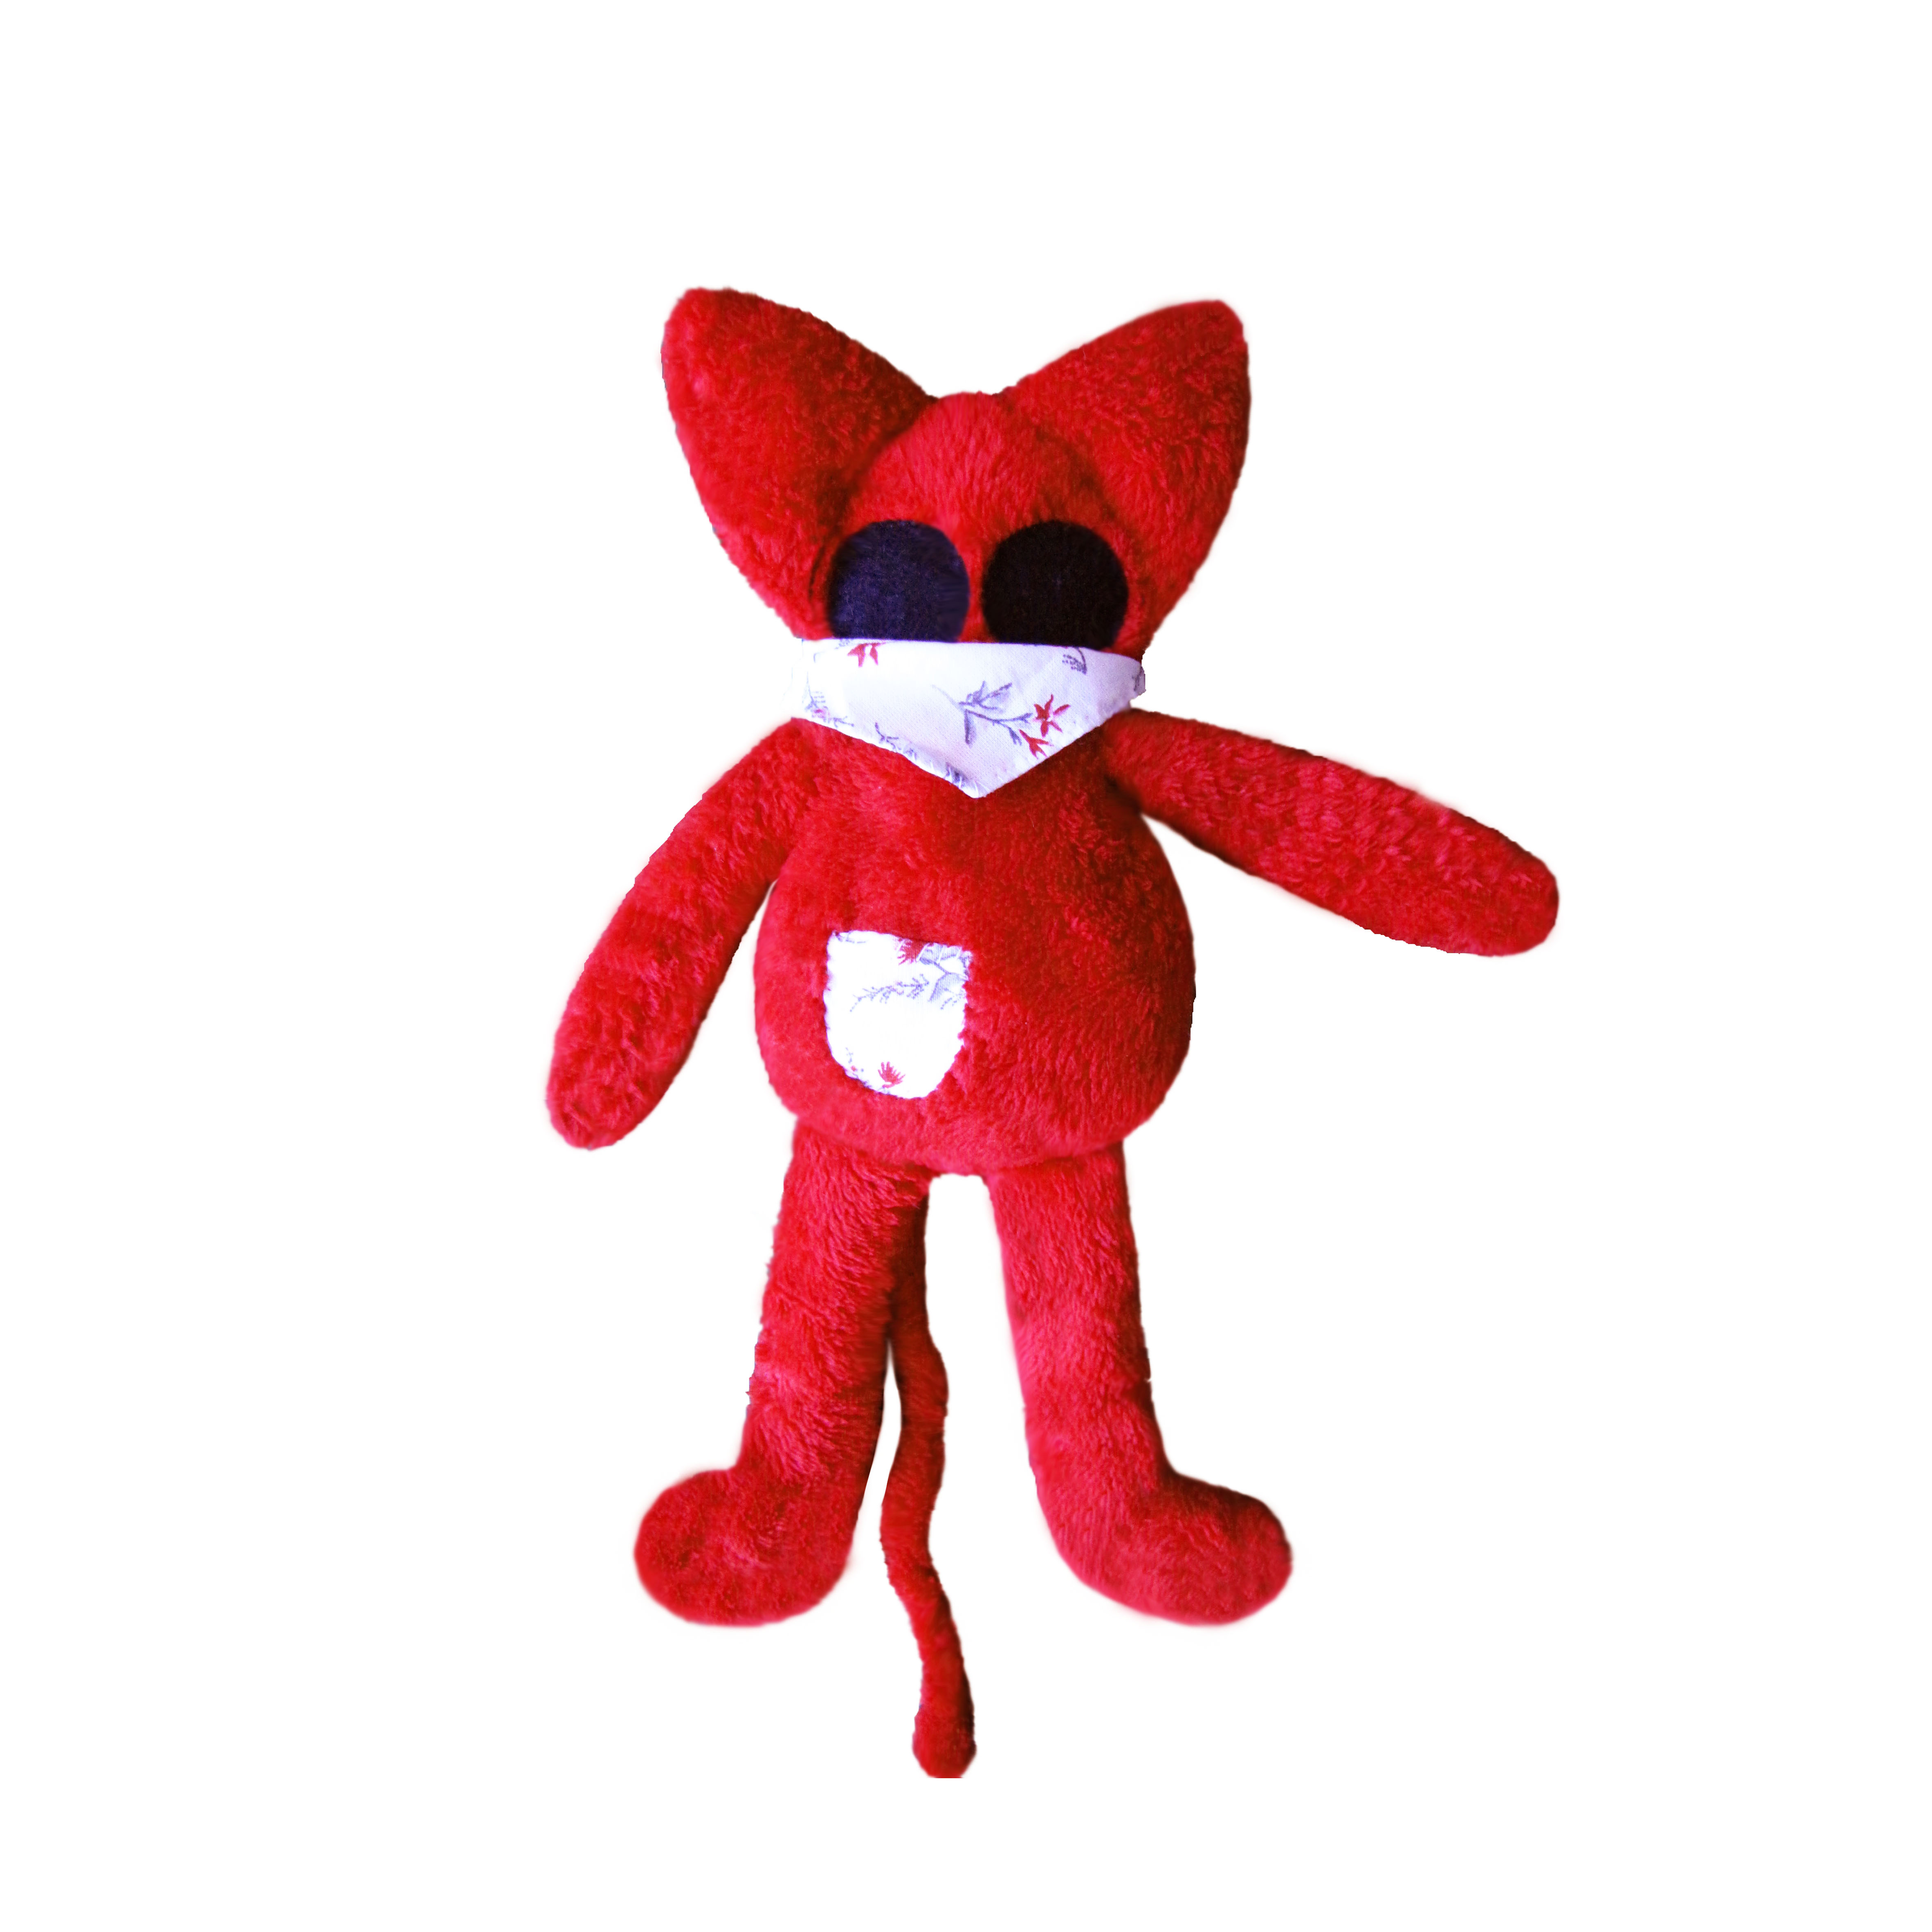 chat rouge 1